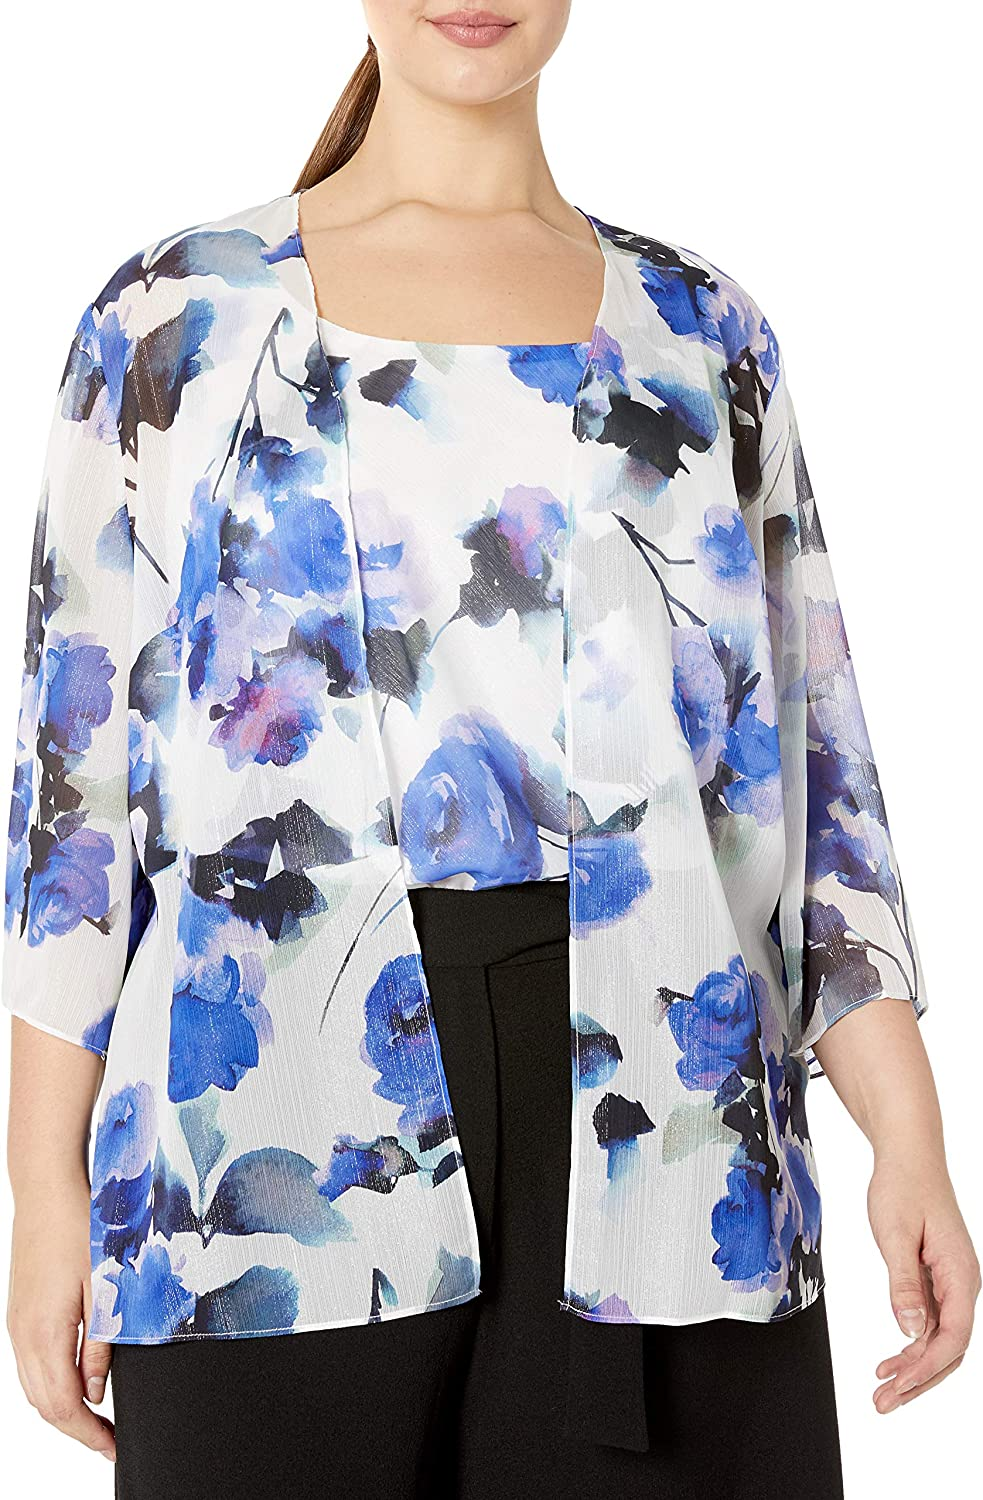 Alex Ranking TOP15 Evenings Women's Plus Size Burnout and Twinset Top Tank Max 90% OFF Jac